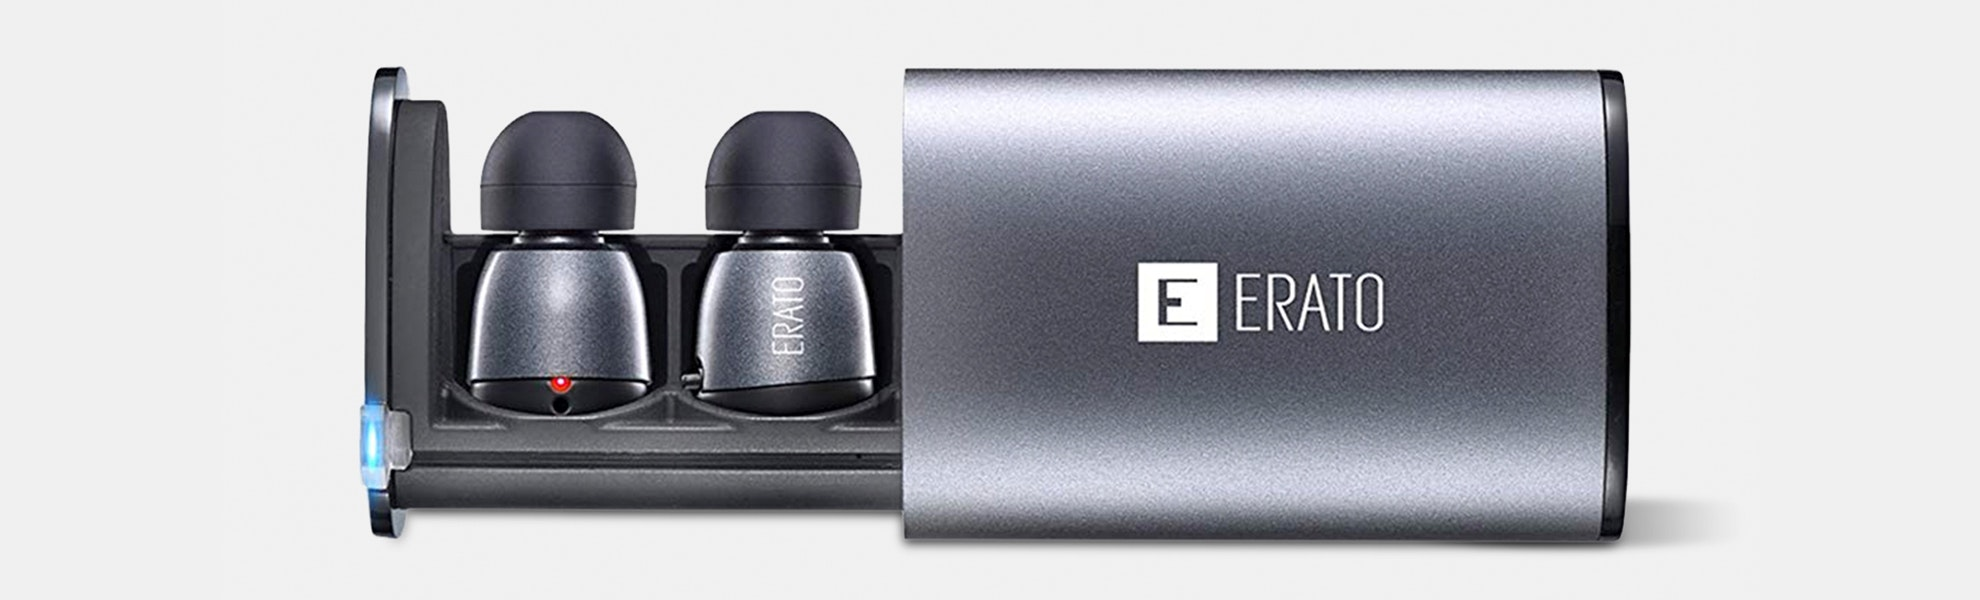 Erato Apollo 7 True Wireless Bluetooth Earphones